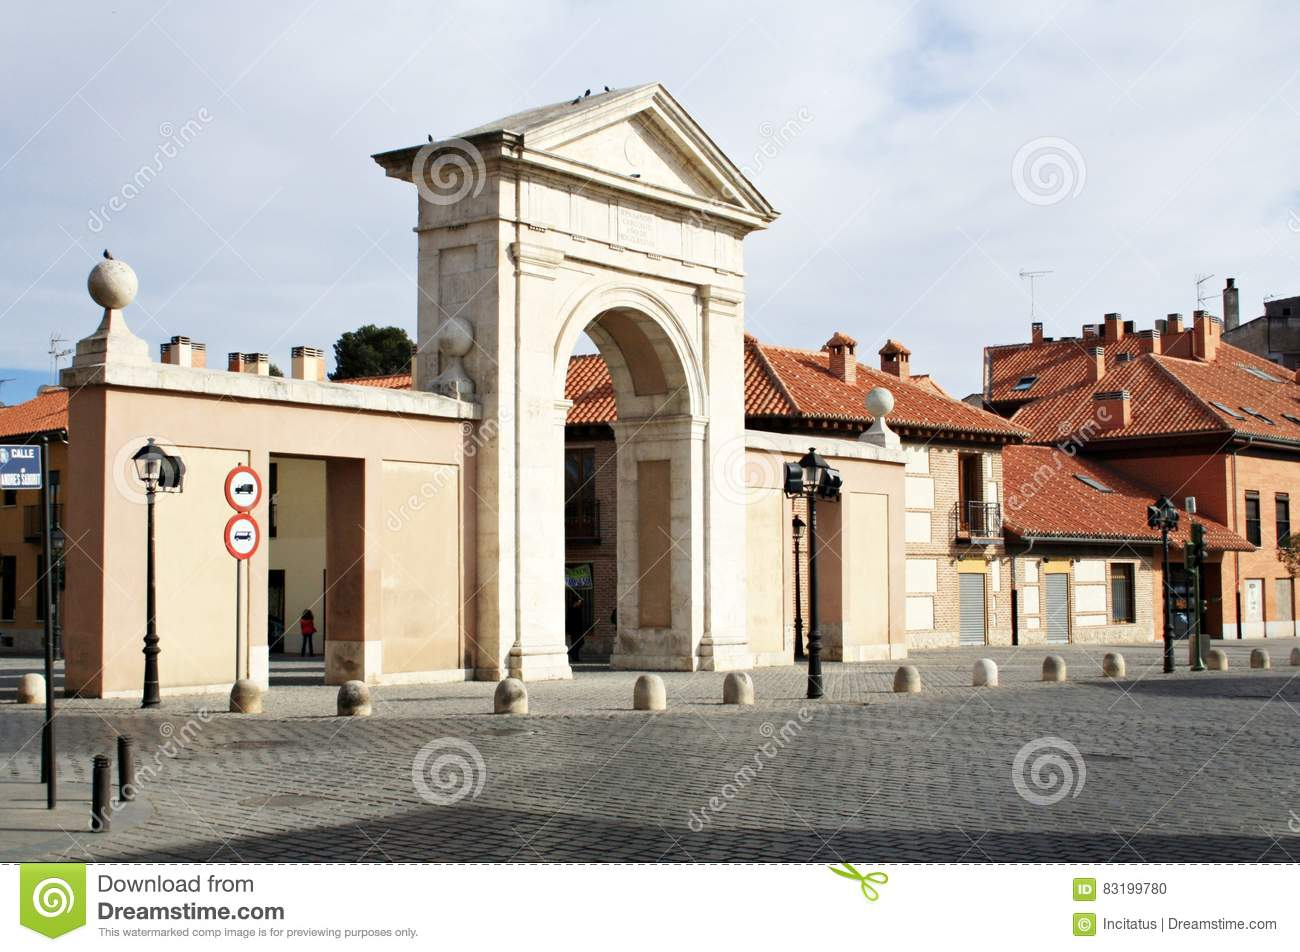 Madrid door in alcala de henares stock photo image 83199780 - Sofas alcala de henares ...